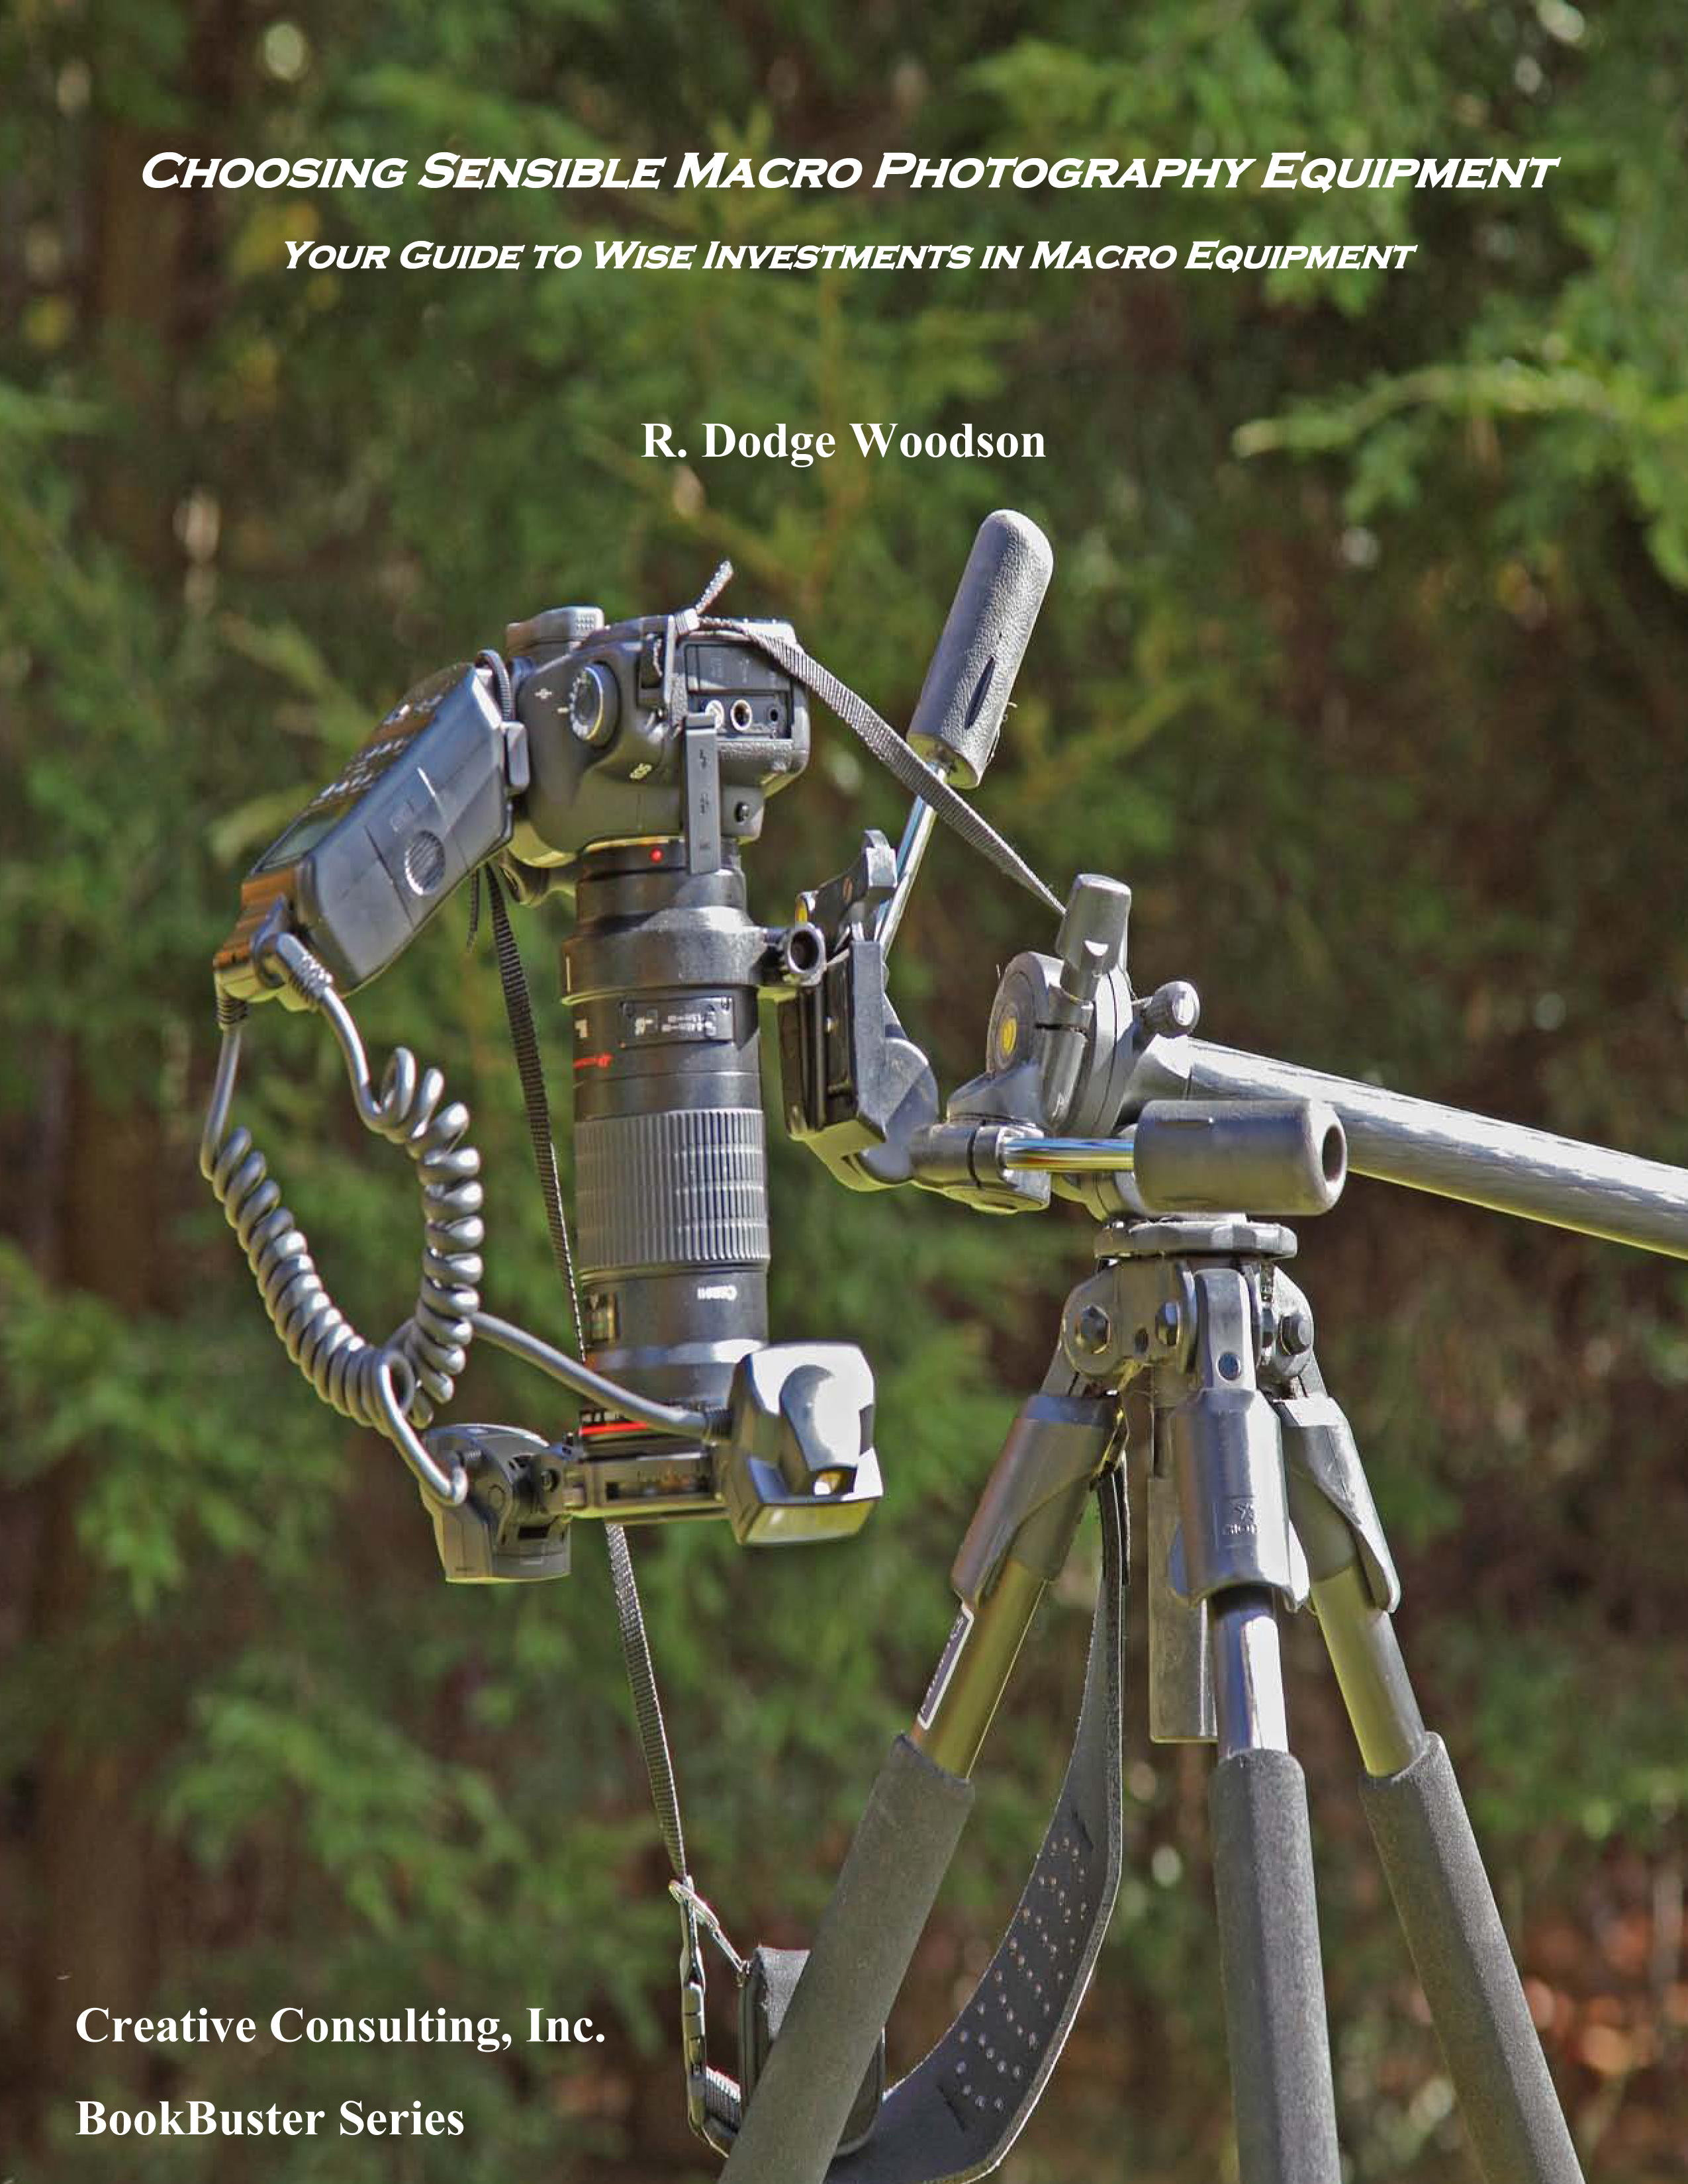 Choosing Sensible Macro Photography Equipment: Your Guide to Wise Investments in Macro Equipment By: R. Dodge Woodson